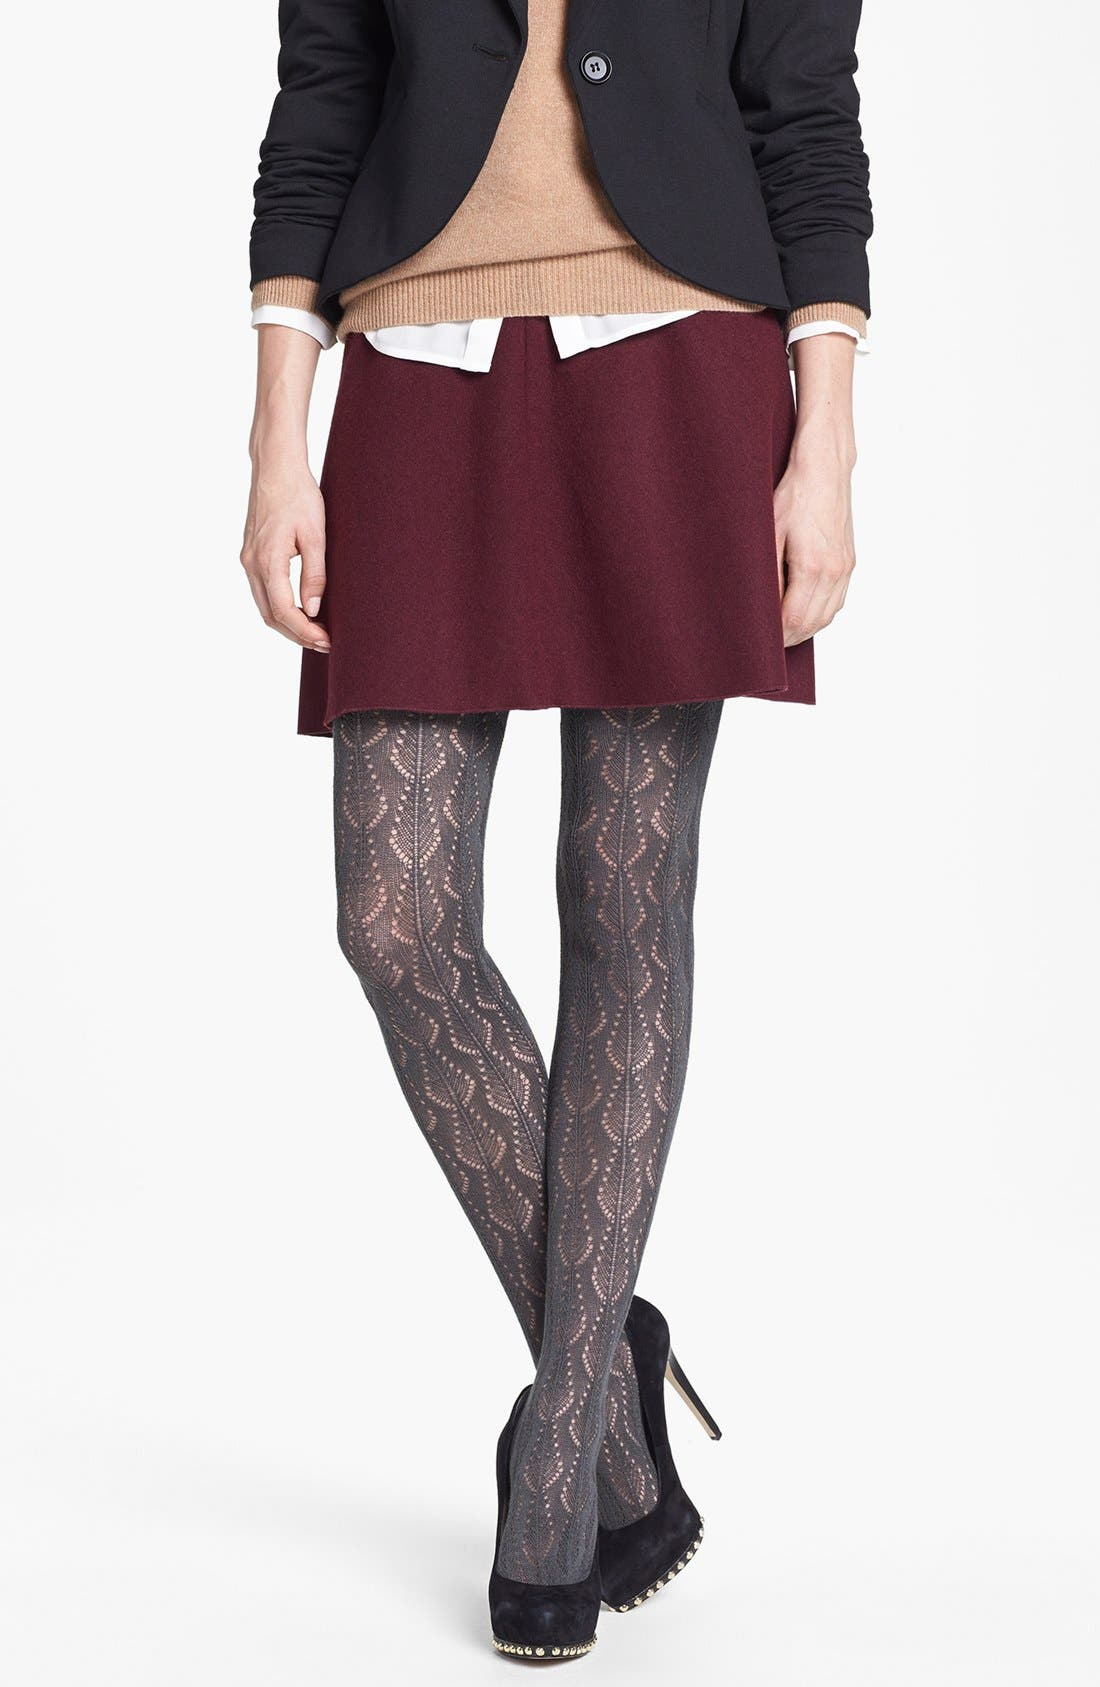 Main Image - Nordstrom 'Pretty Pointelle' Tights